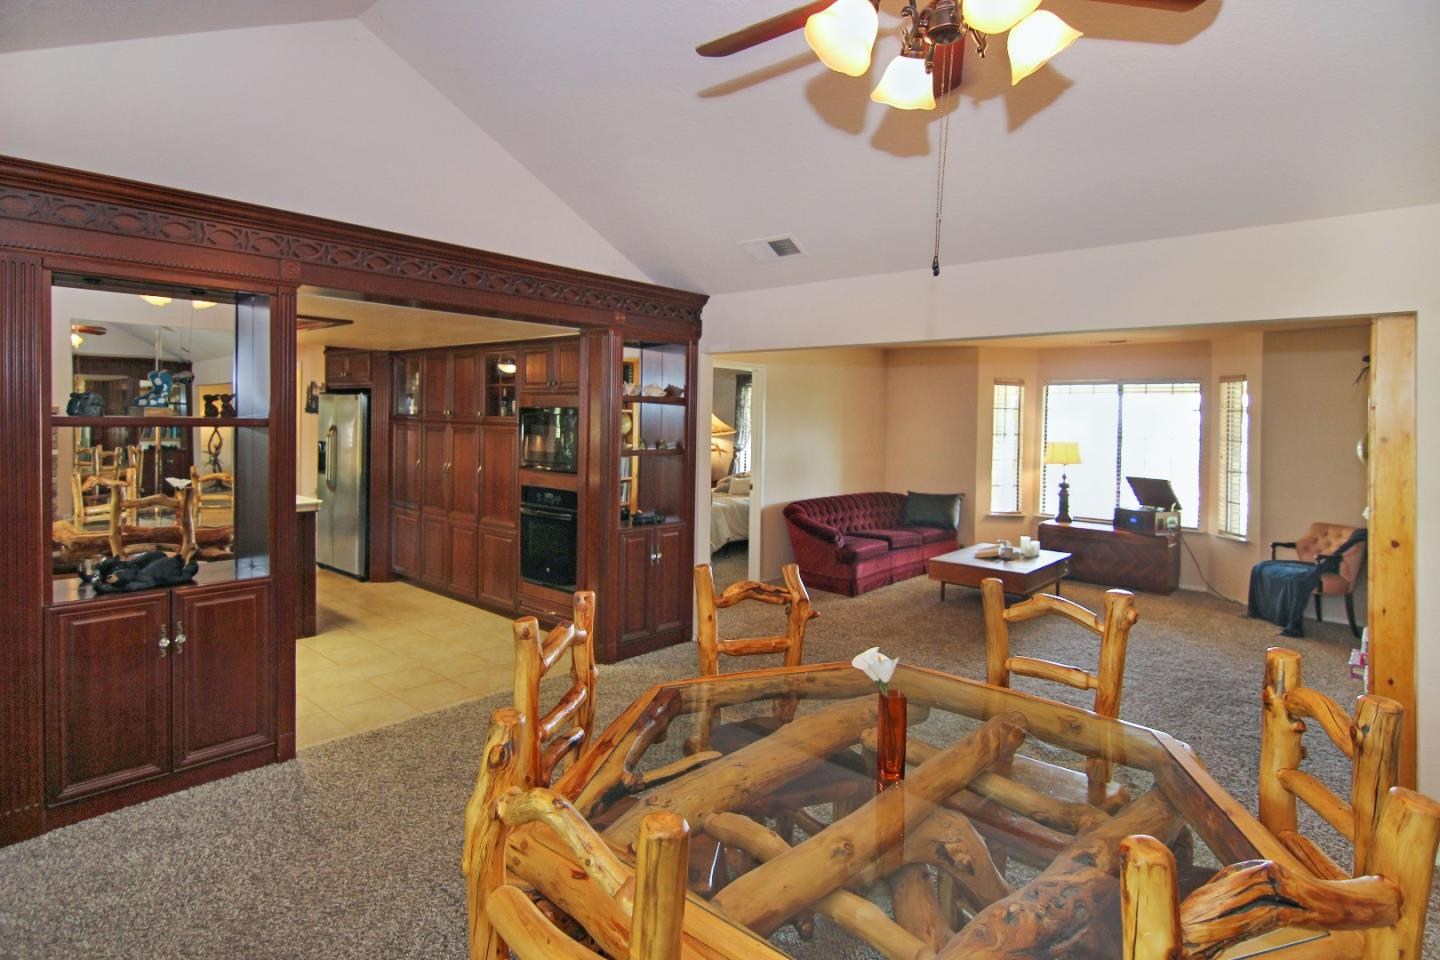 Additional photo for property listing at 14208 Road 36  Madera, Kalifornien 93636 Vereinigte Staaten